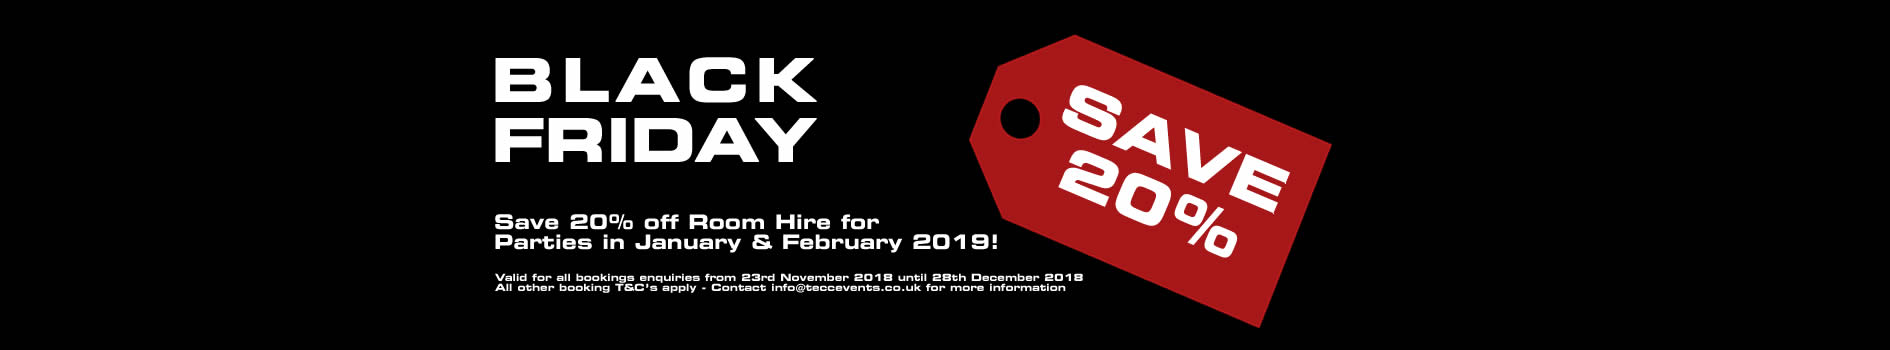 Black Friday Sale - Totton & Eling CC Events